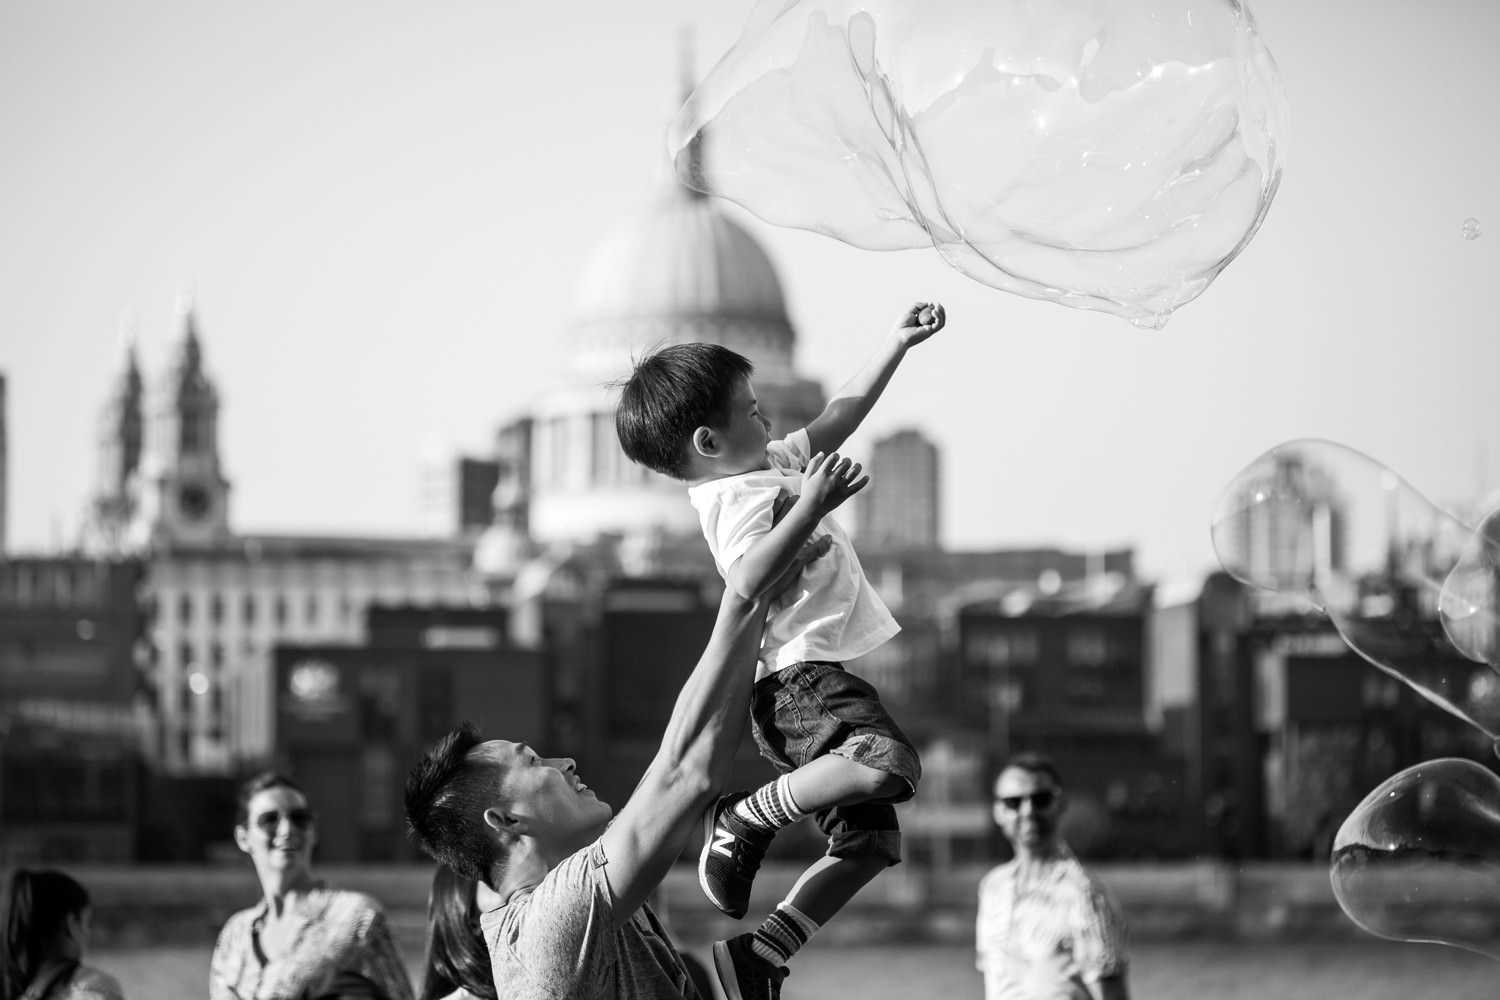 a black and white photograph of a boy playing with bubbles on South Bank